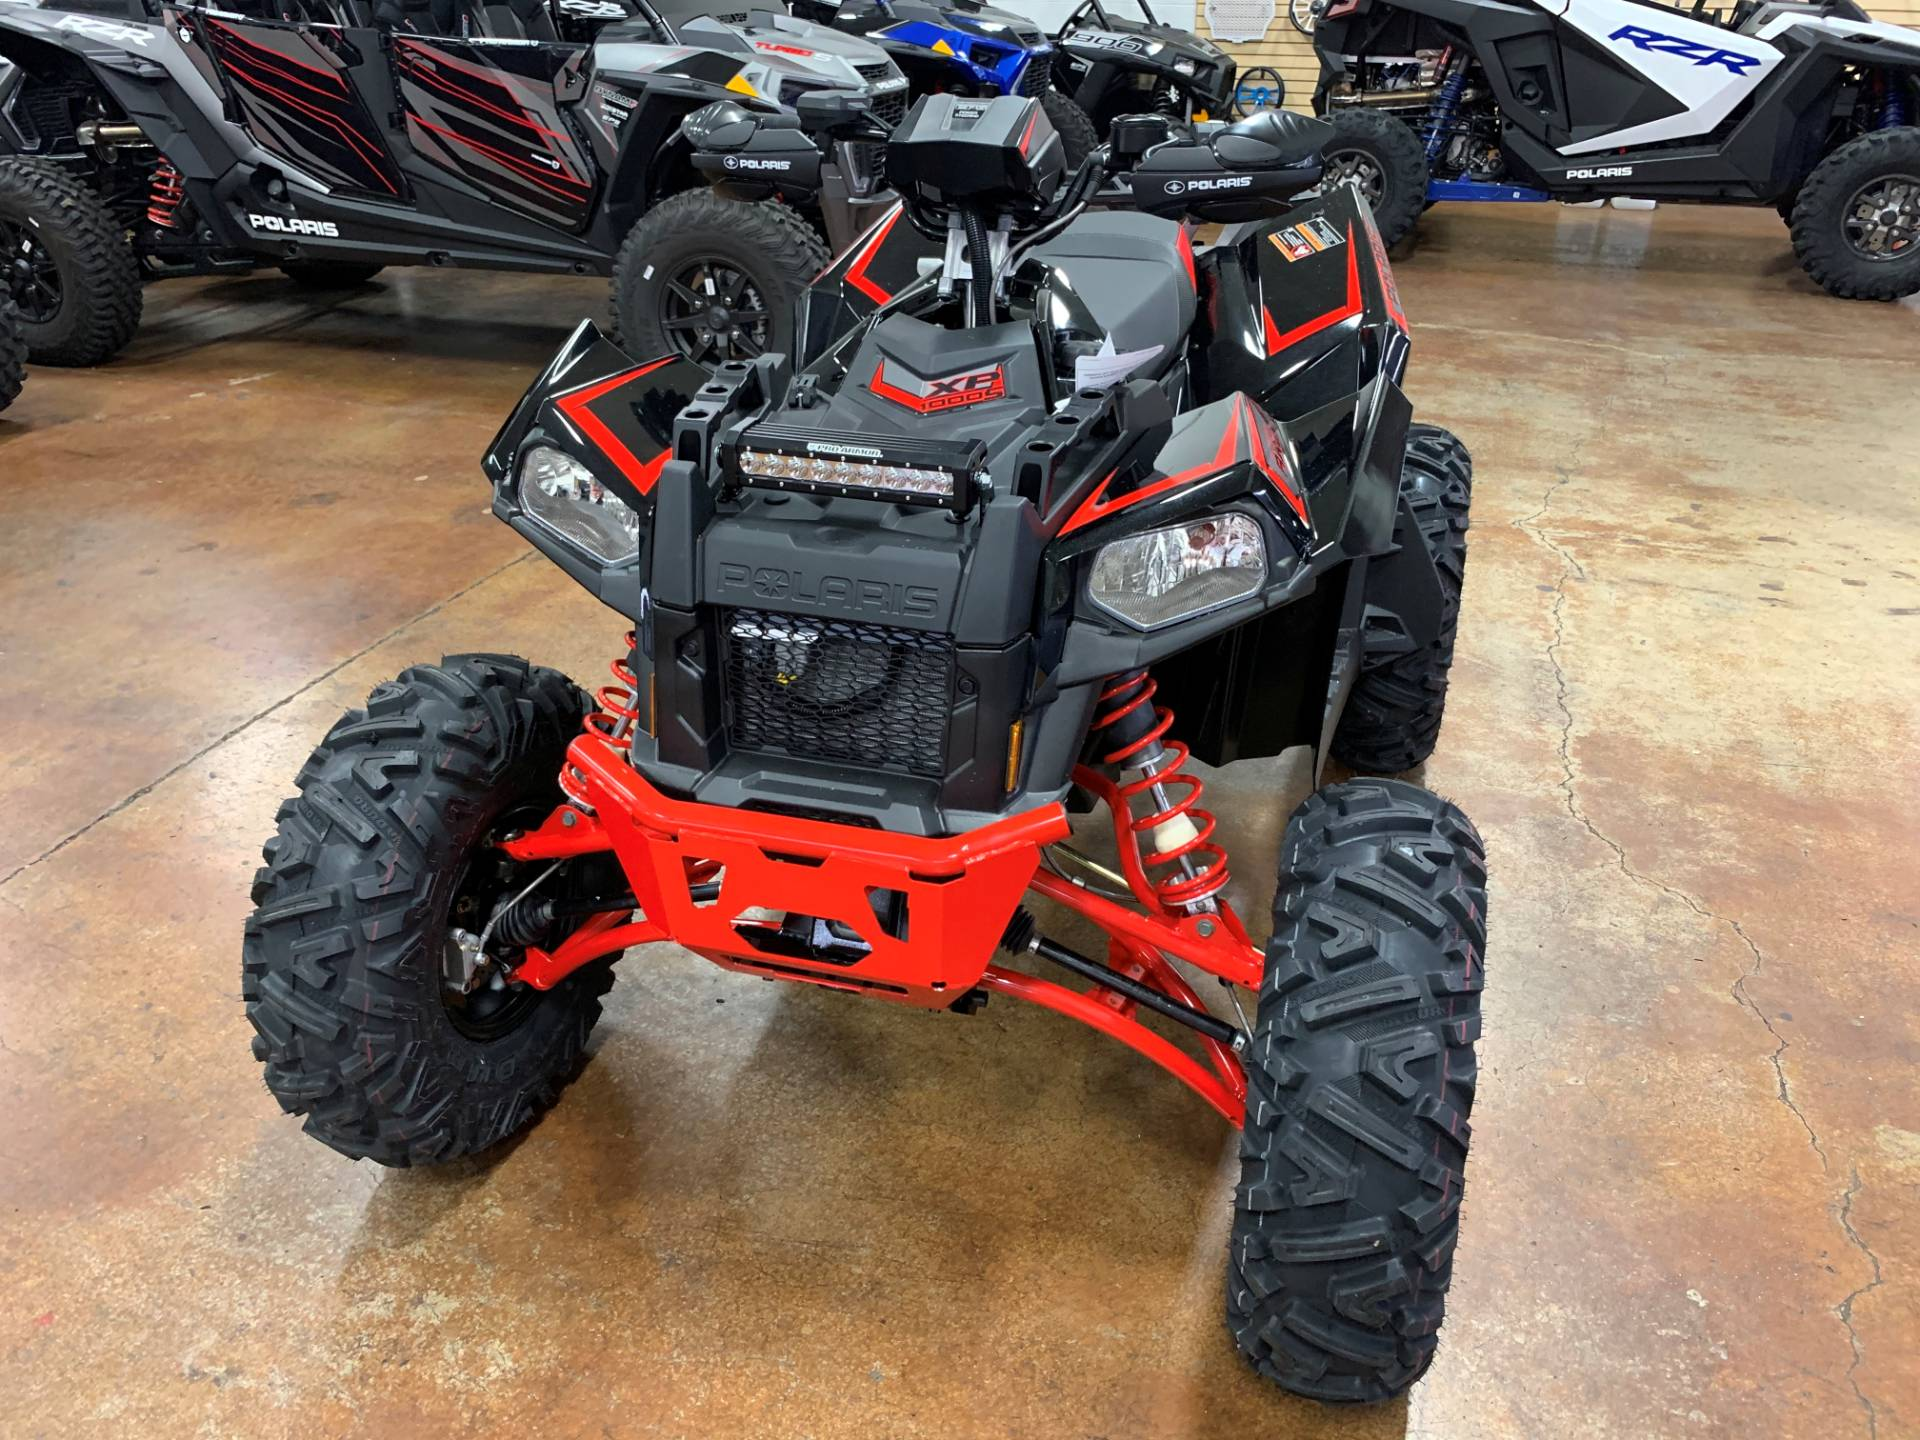 2020 Polaris Scrambler XP 1000 S in Tualatin, Oregon - Photo 2